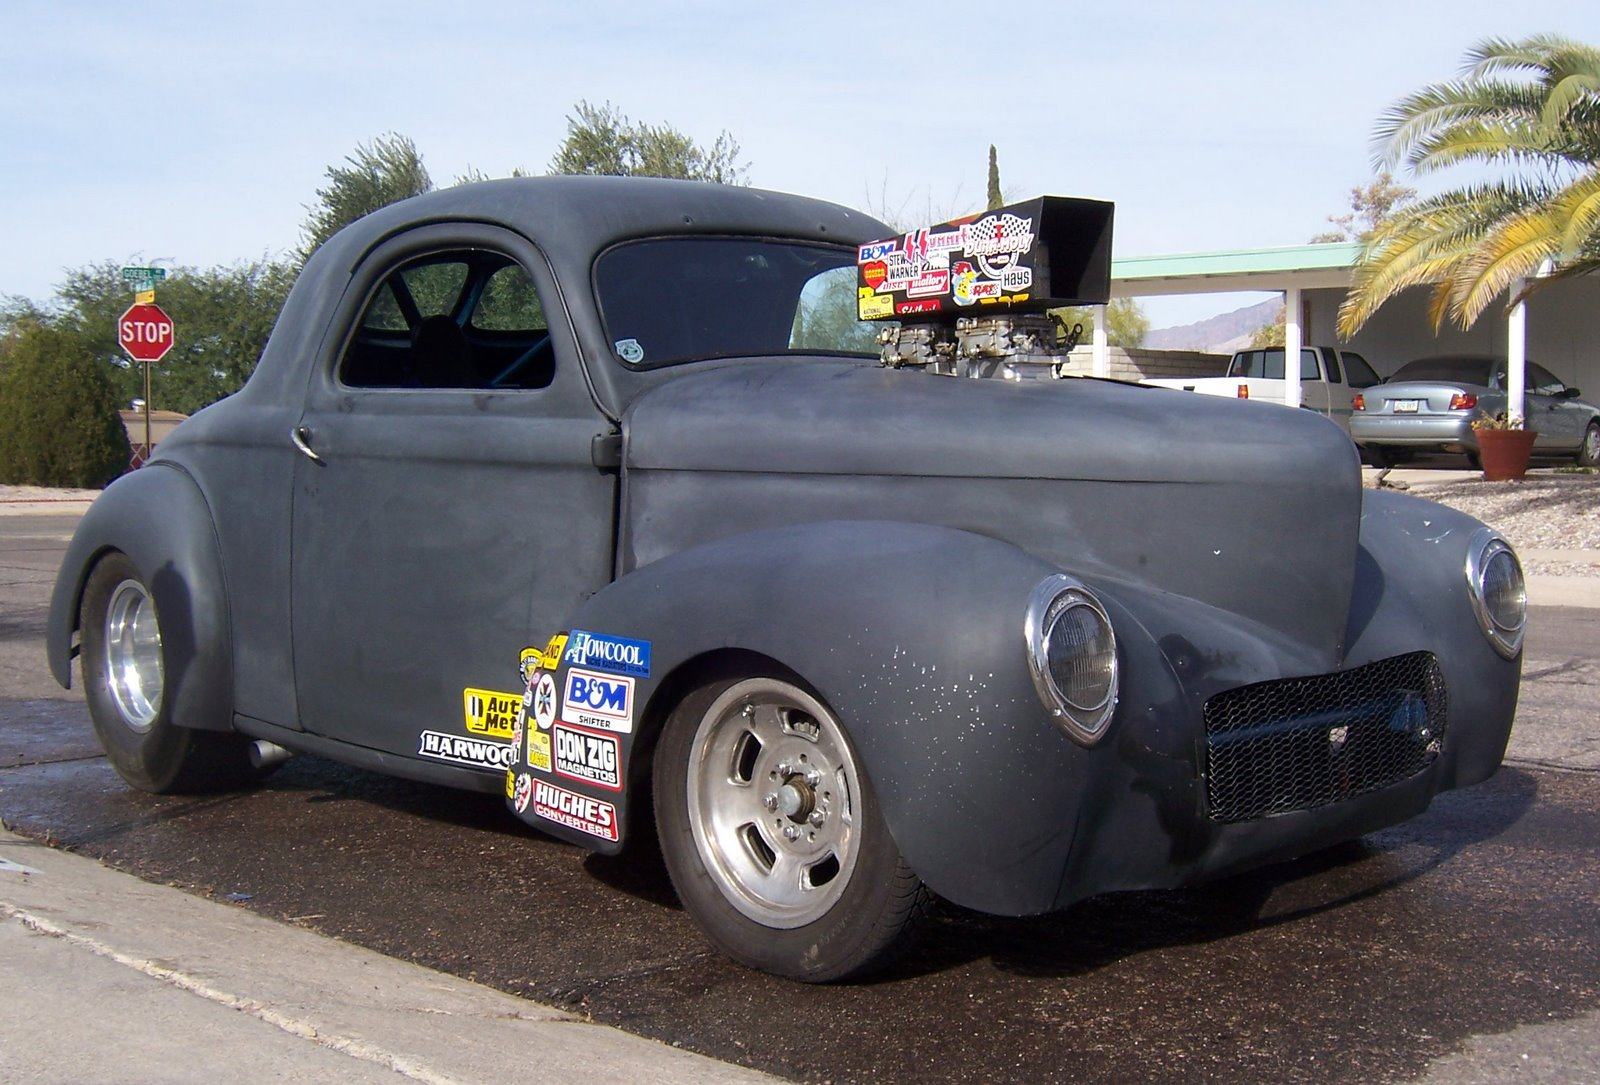 for sale 40 willys coupe steel main body glass doors deck lid front